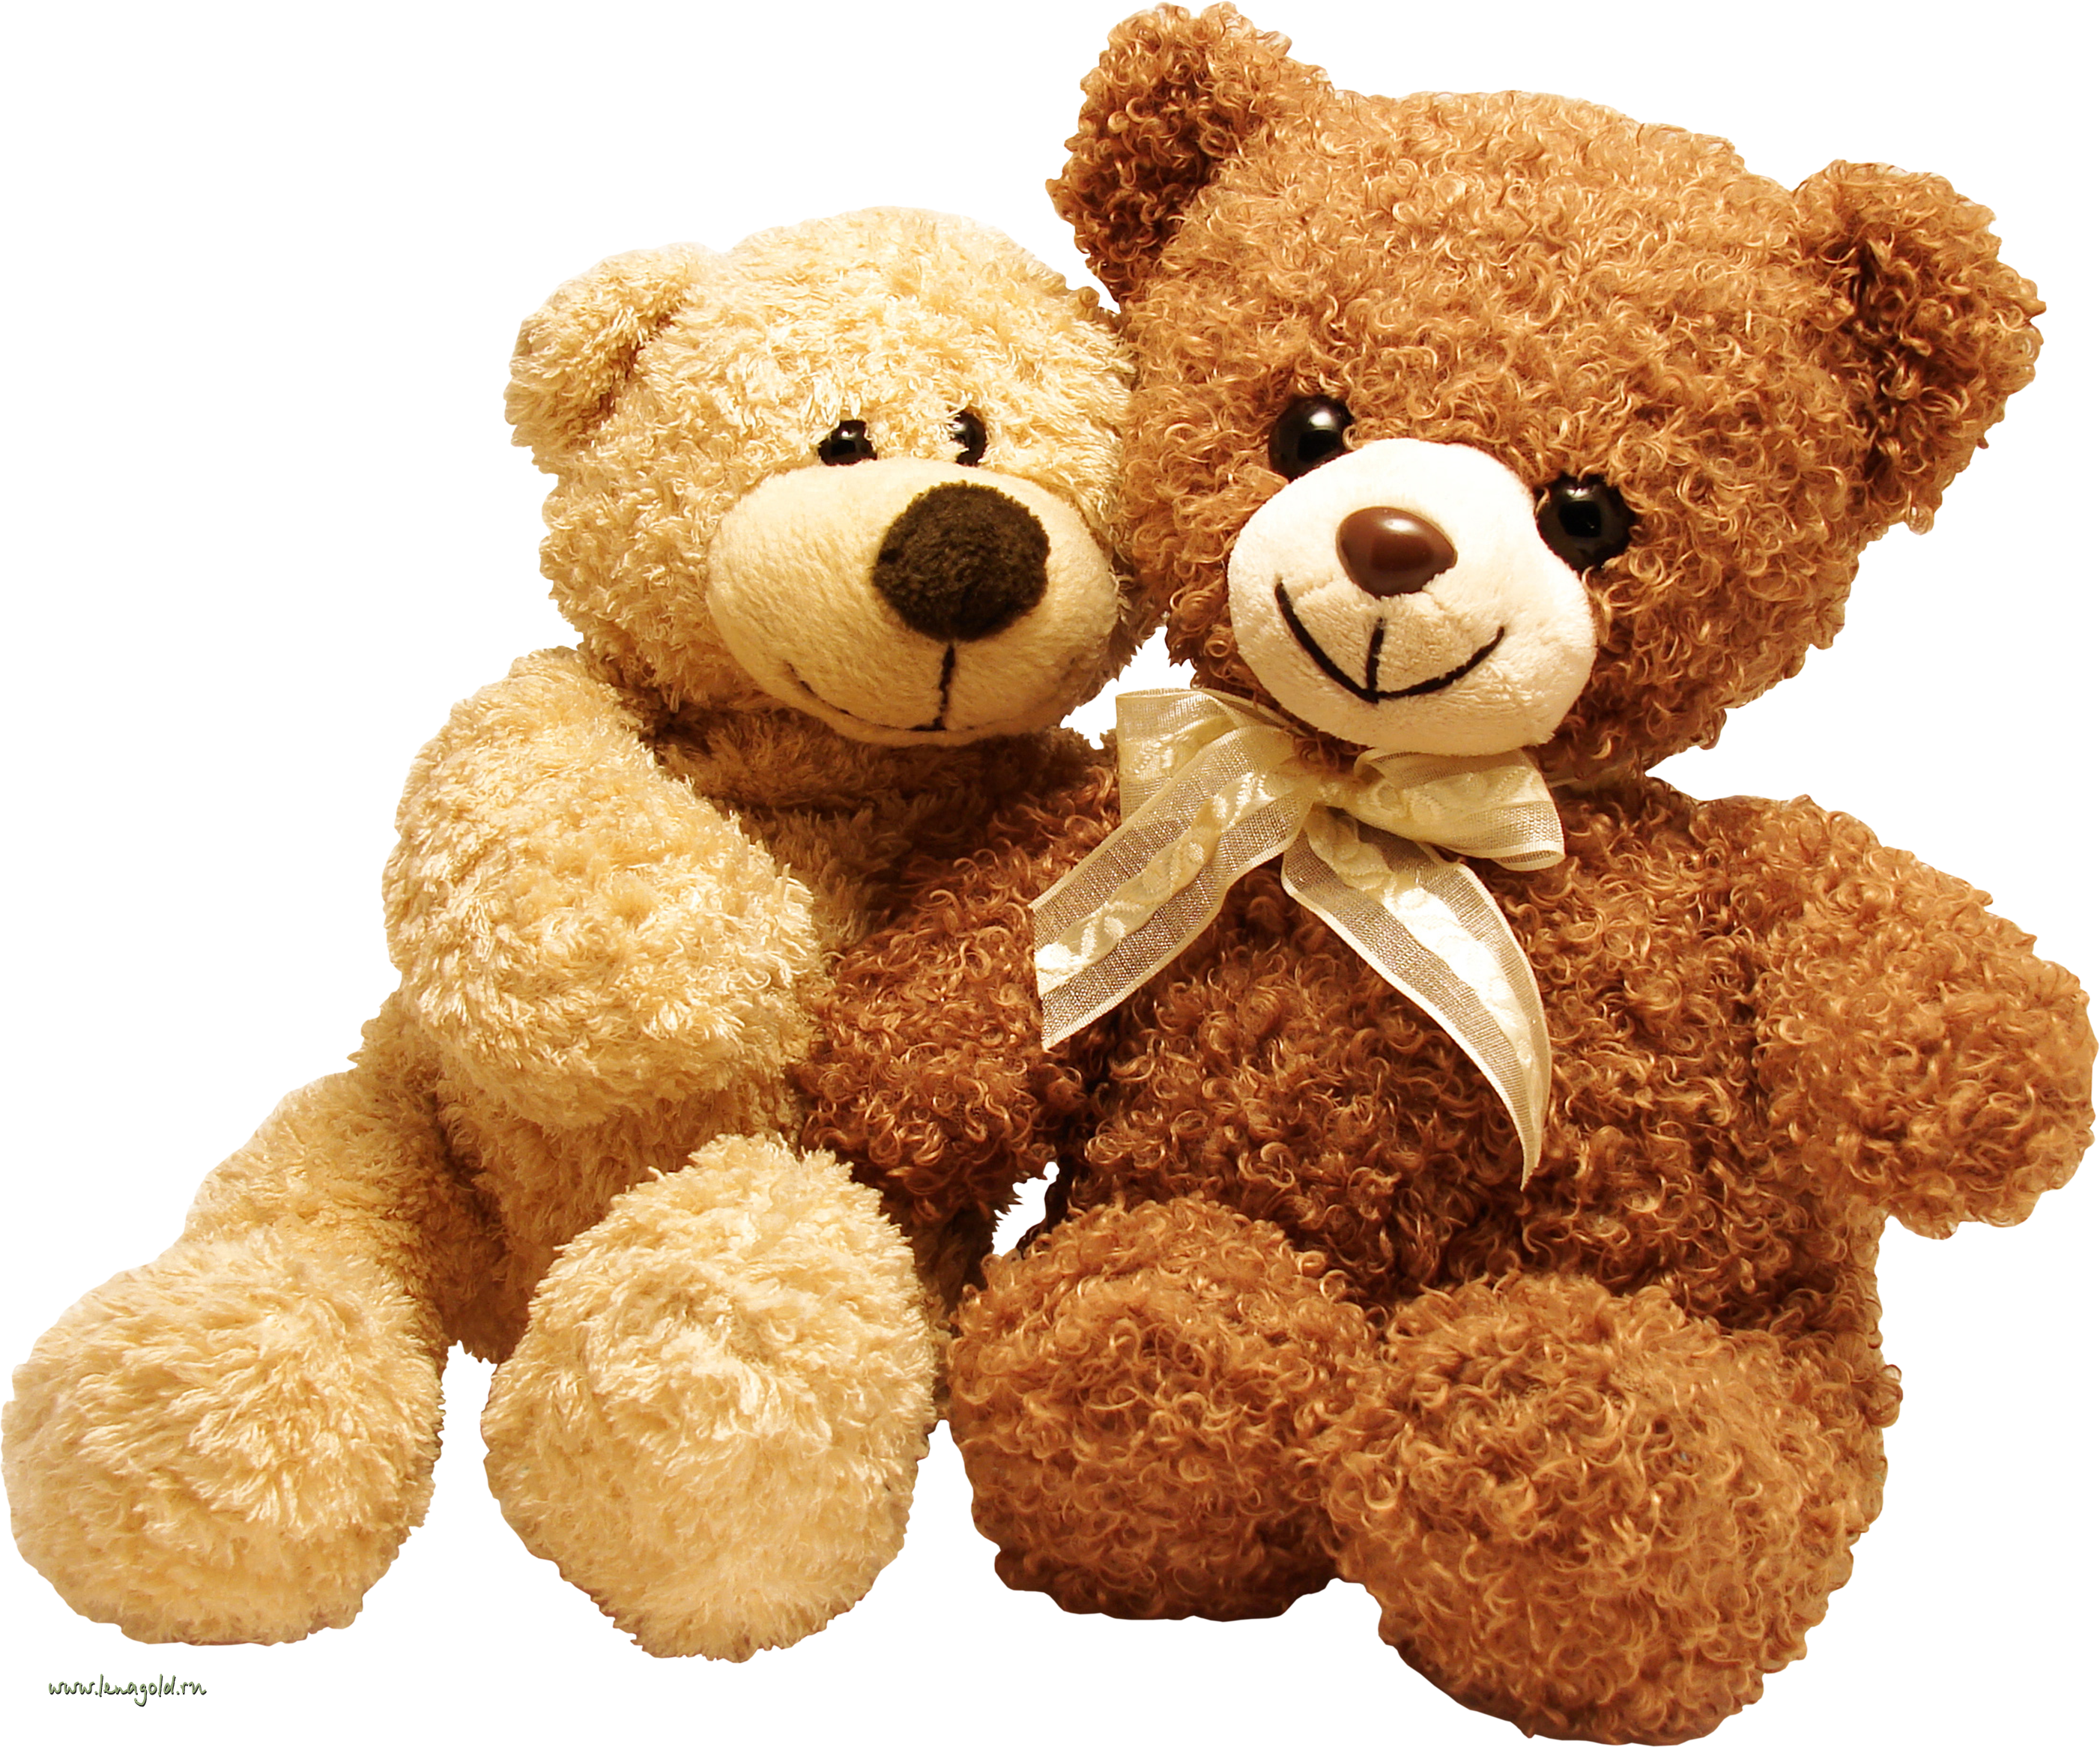 Transparent stuff toy. Teddy bear png free